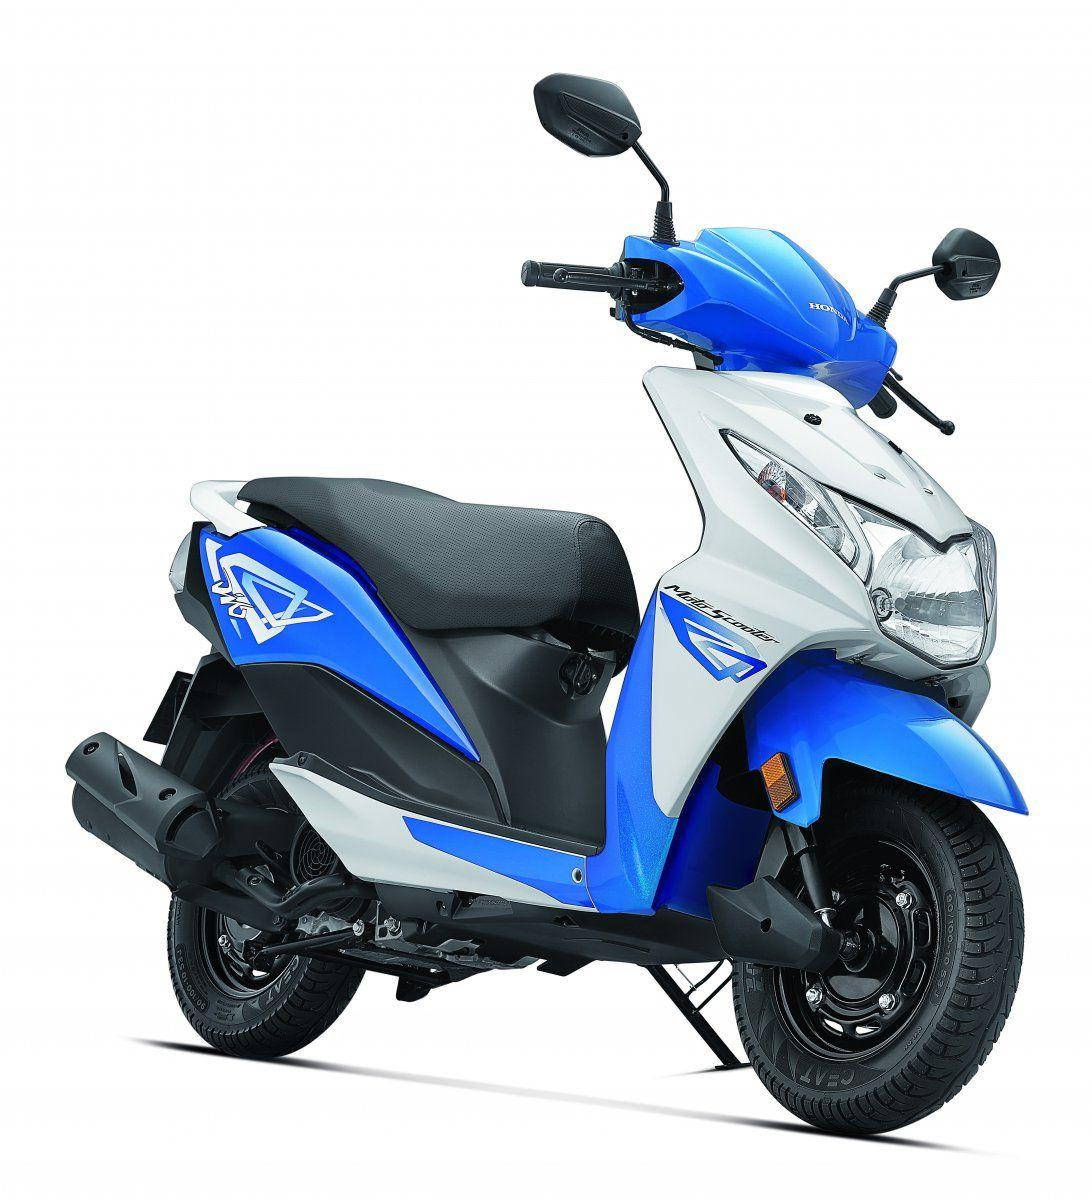 ➡➡new honda dio photos pictures free download